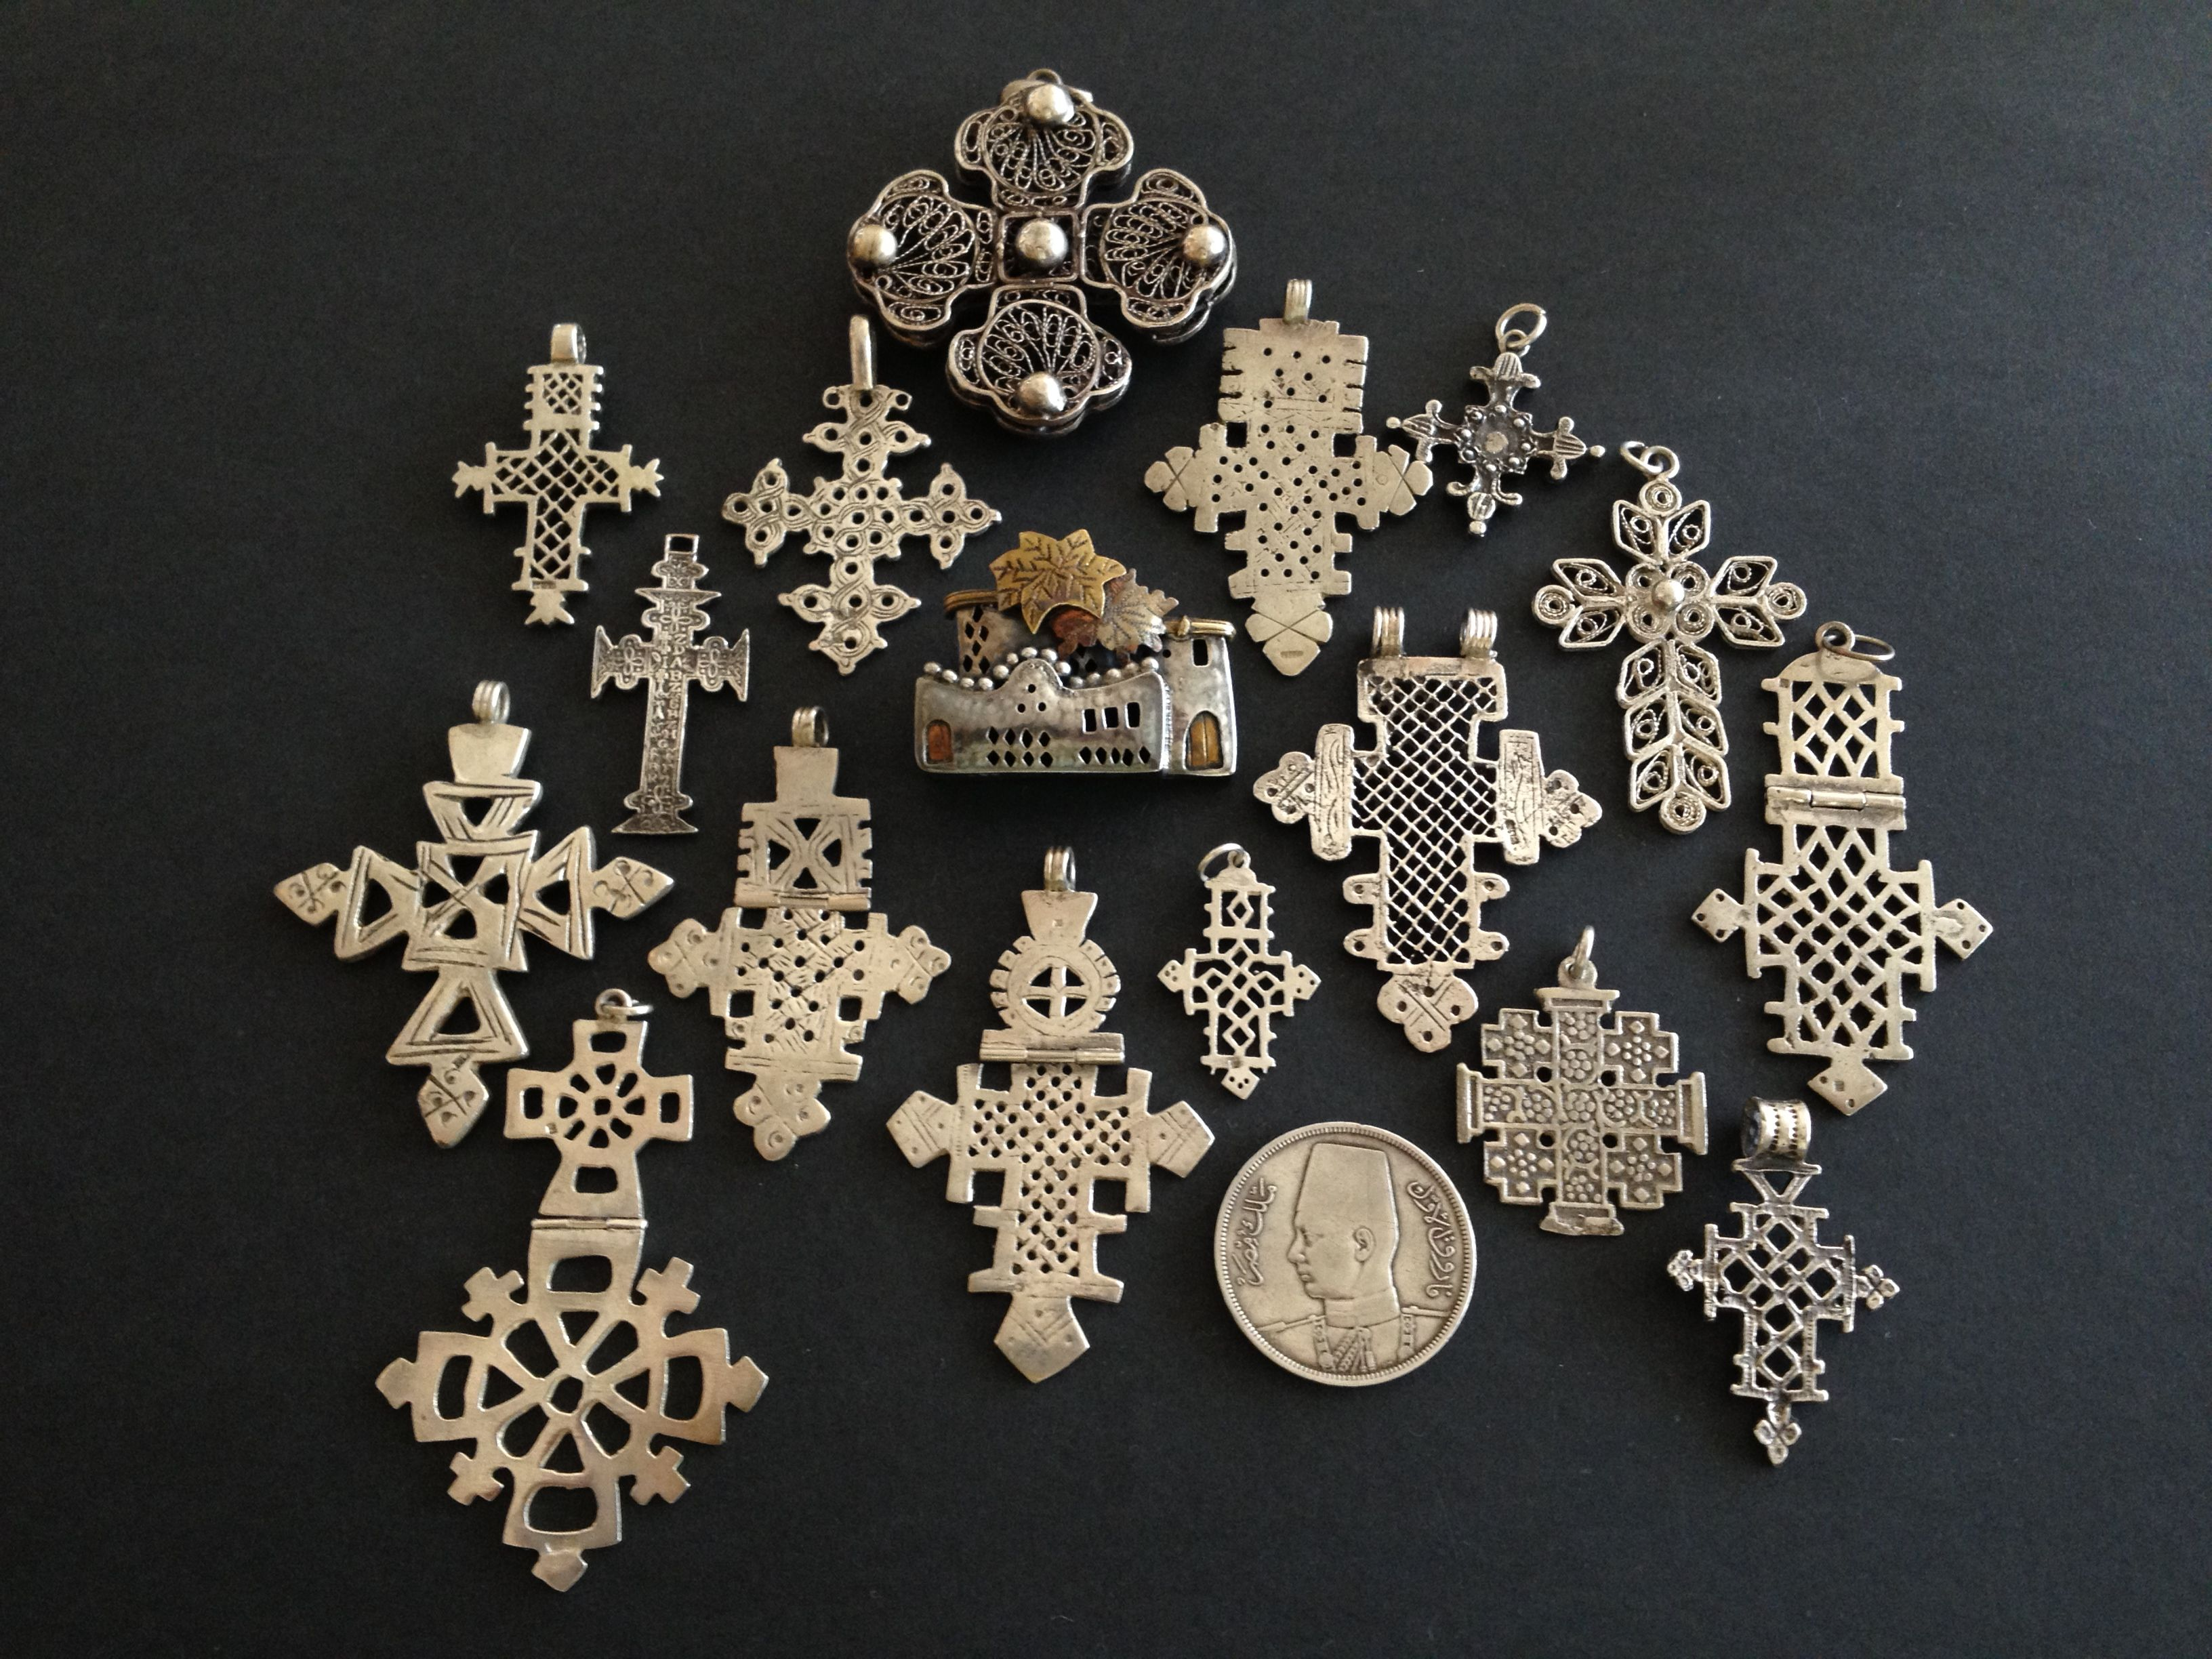 Africa | Set of silver coptic crosses bought in Egypt some 25 years ago. The silver brooch was also bought at that time and represents typical Nubian houses in Upper Egypt. | © Jose M Pery.  { It is worth noting here that there are Coptic people in both Egypt and Ethiopia, which might explain why the crosses look so similar }